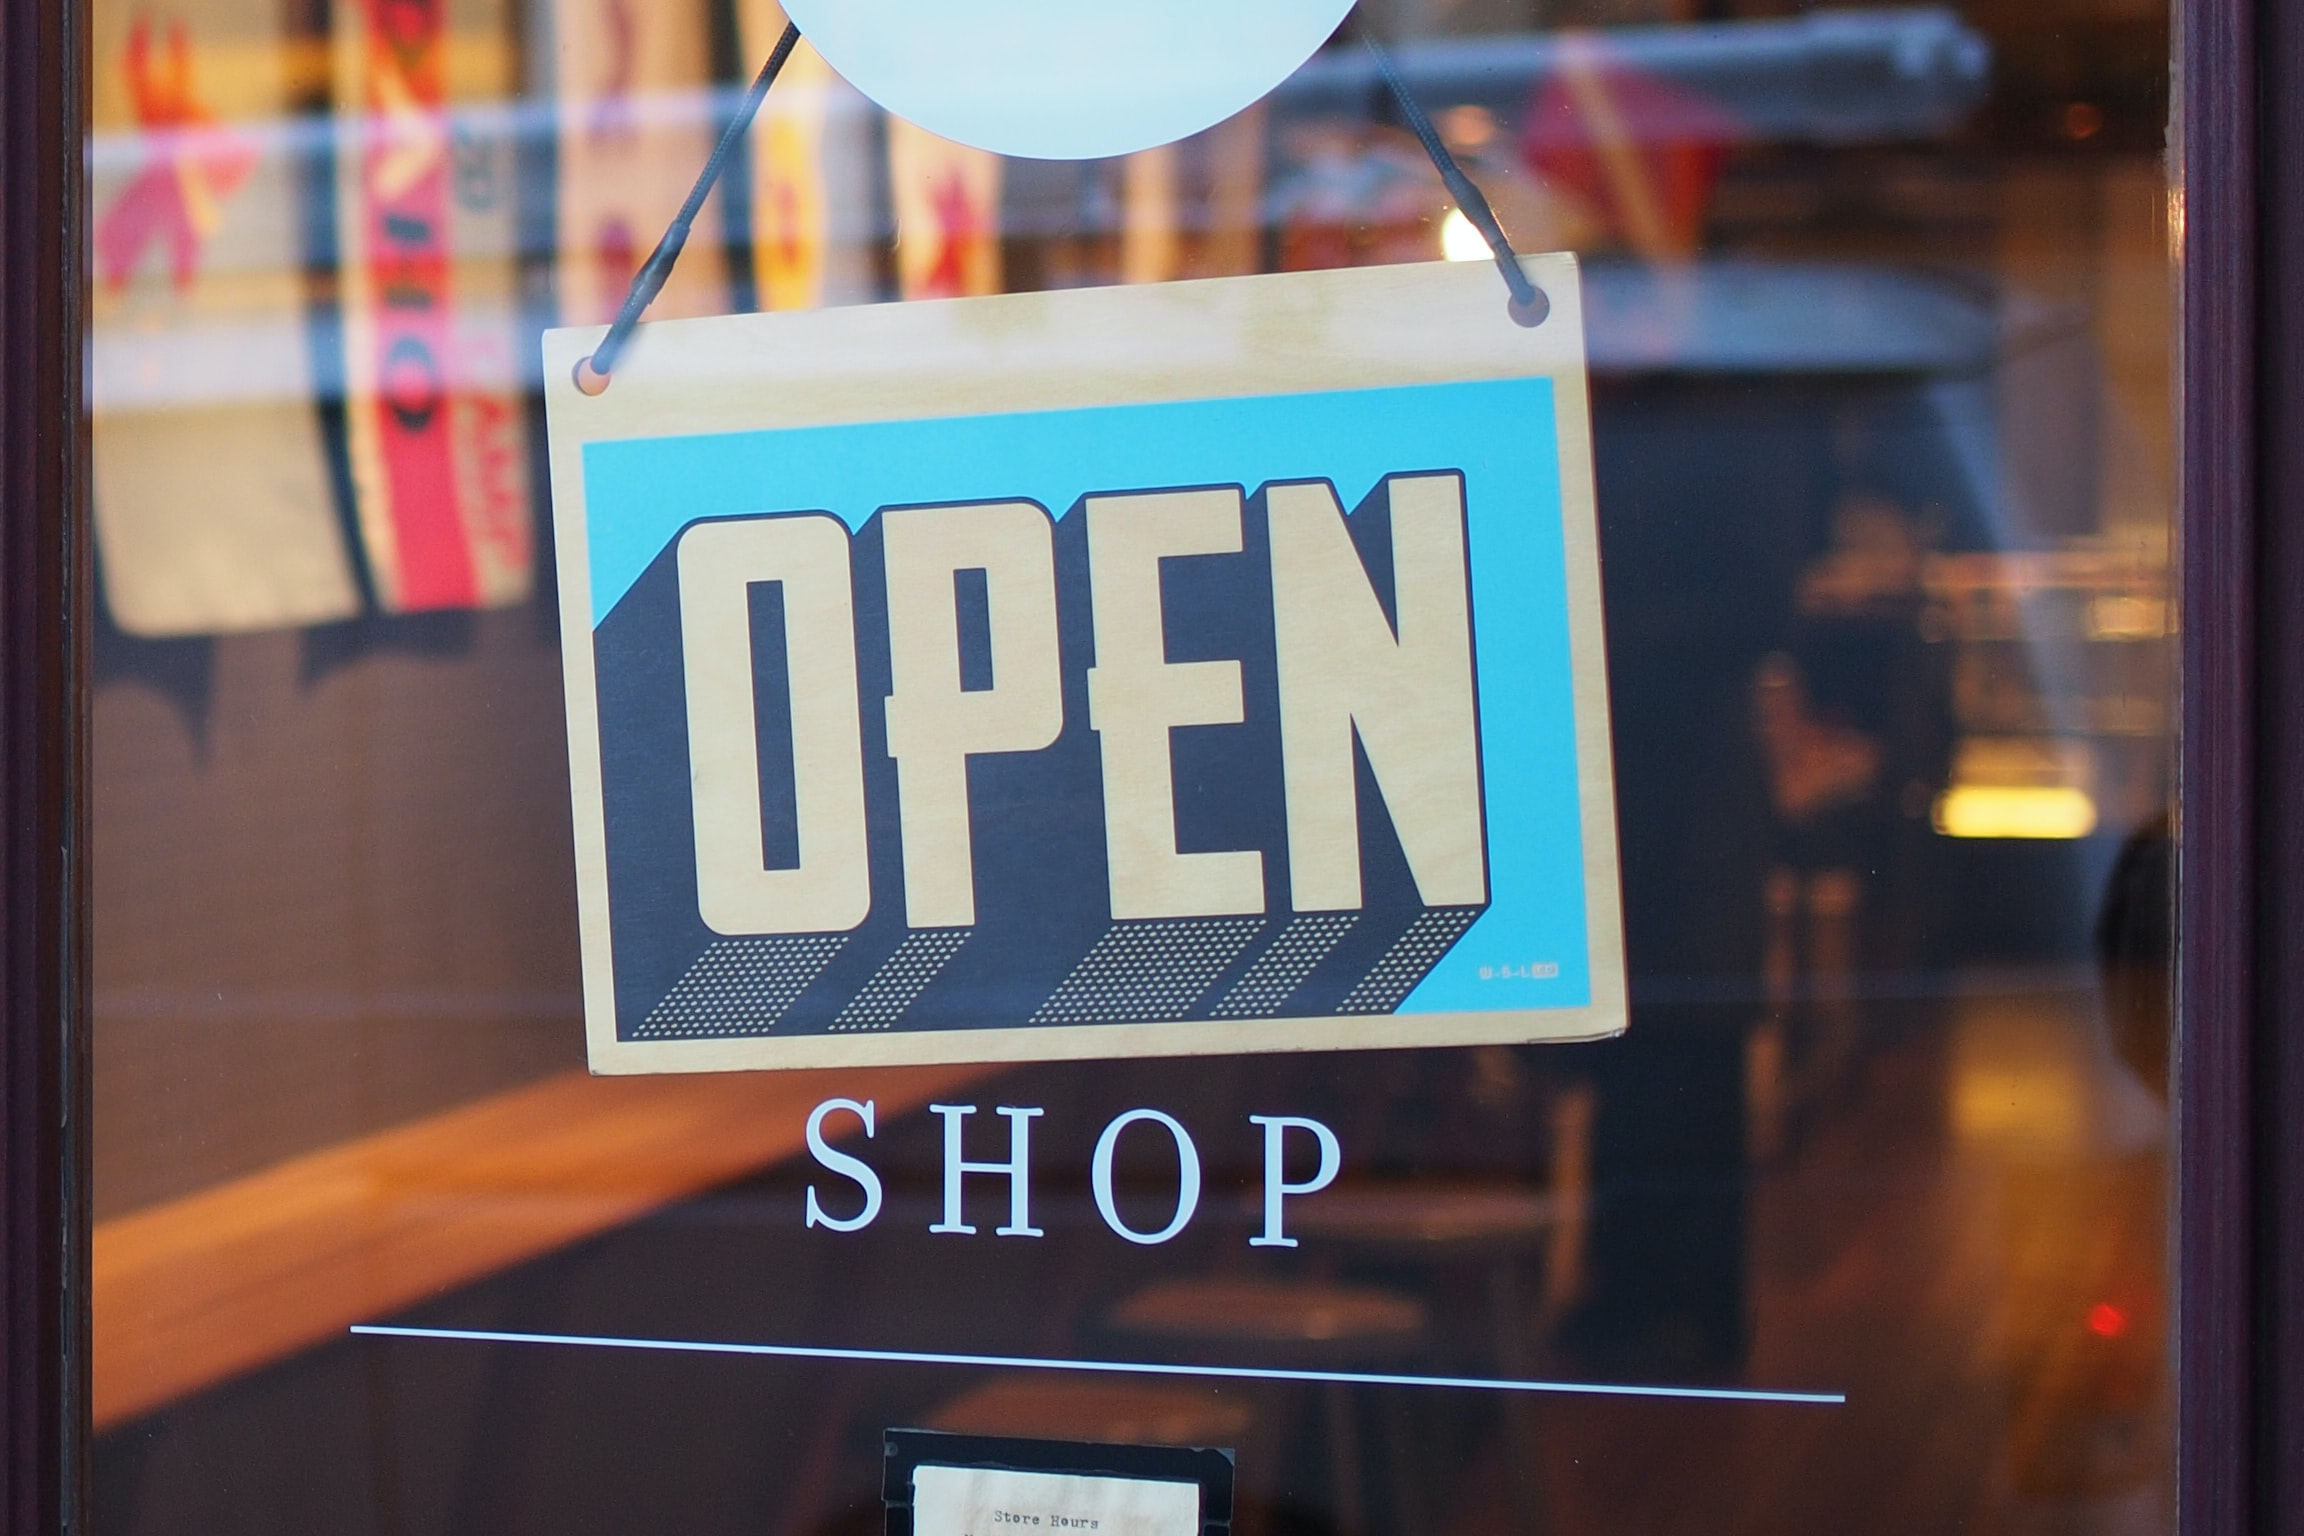 open sign in the front window of a store